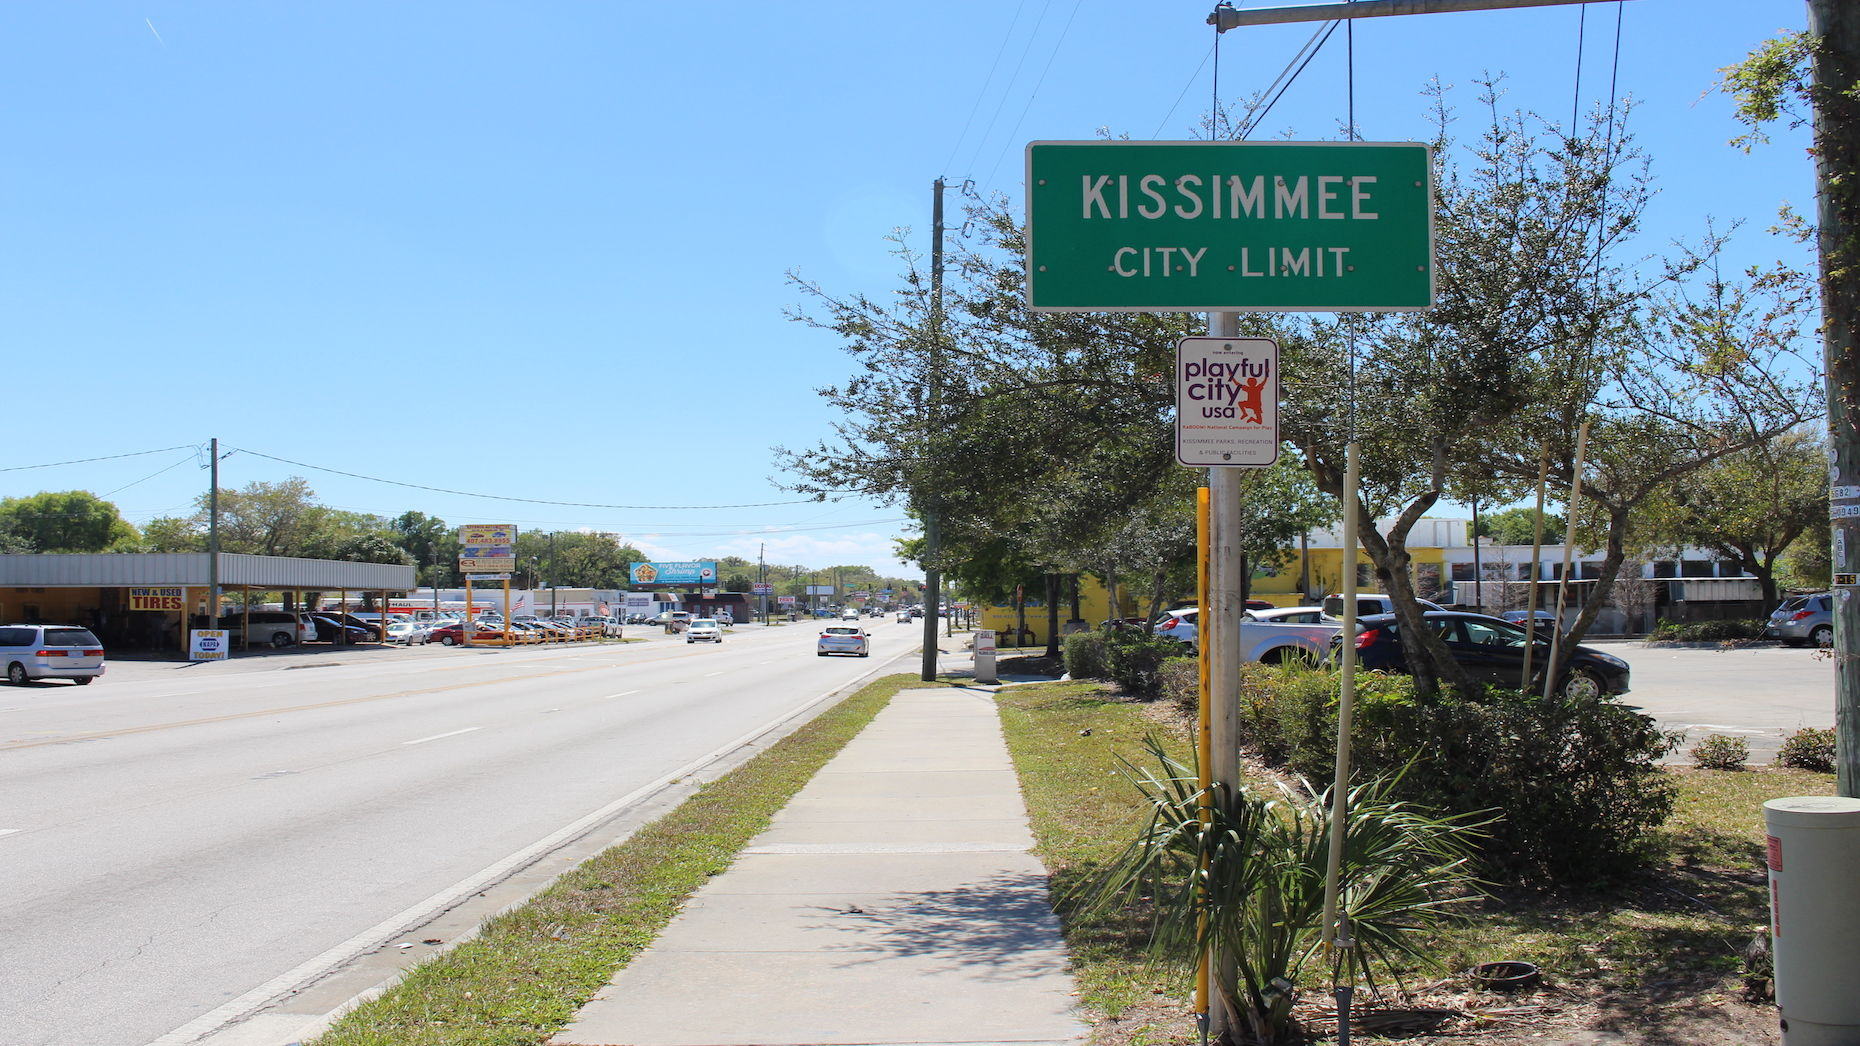 Airbnb-branded apartments are planned for the city of Kissimmee, Fla. Photo: Wikimedia Commons/Michael Rivera